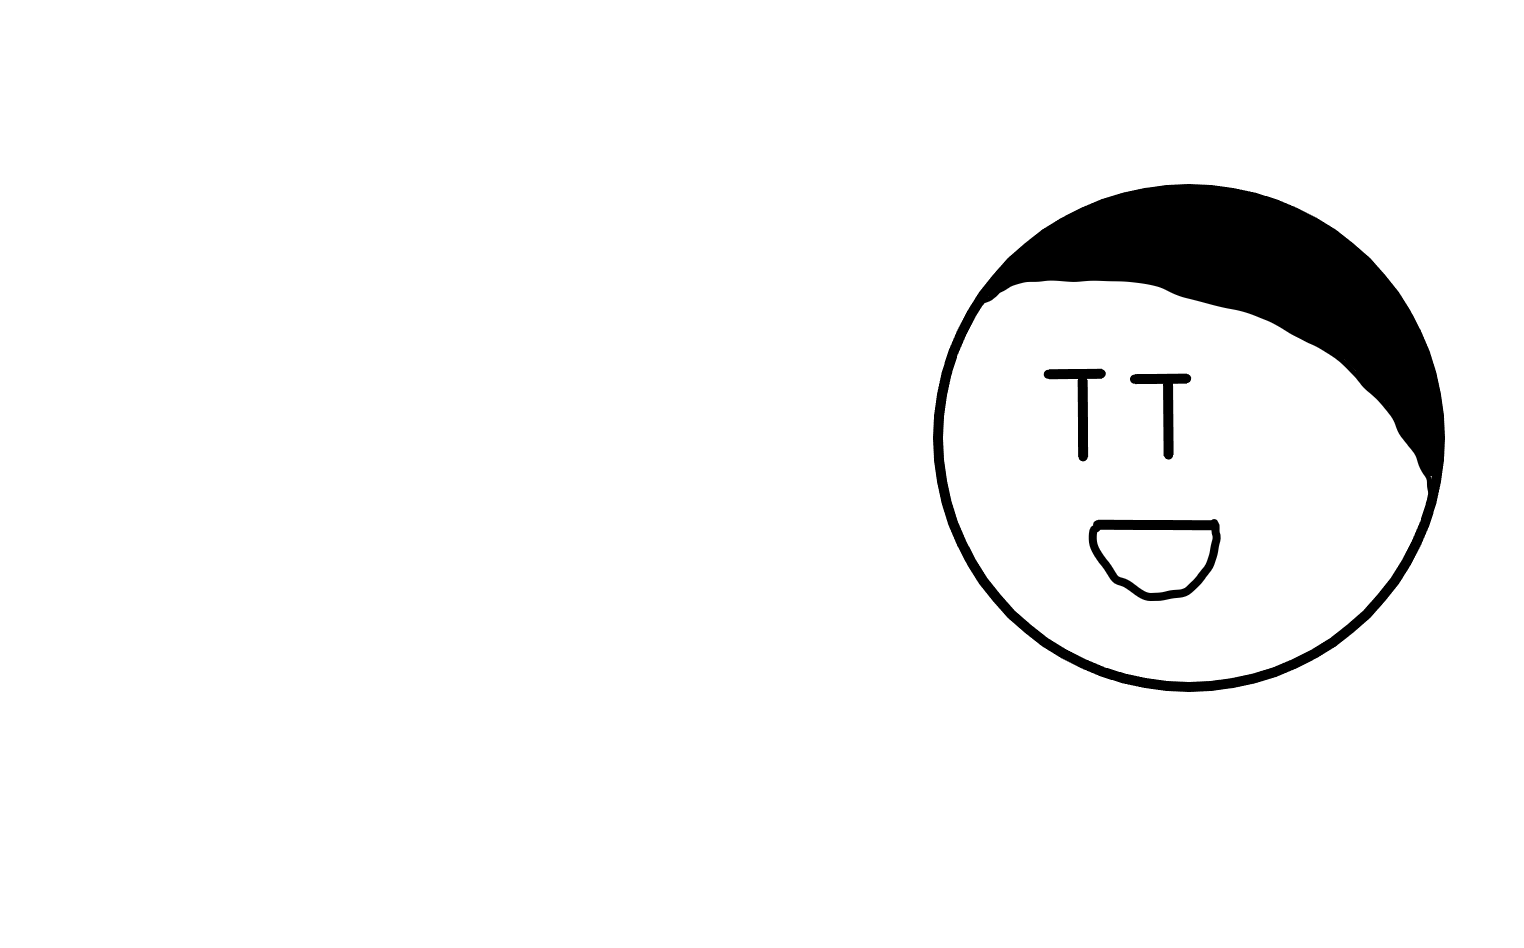 Talking face - Lowered brows smiling.png